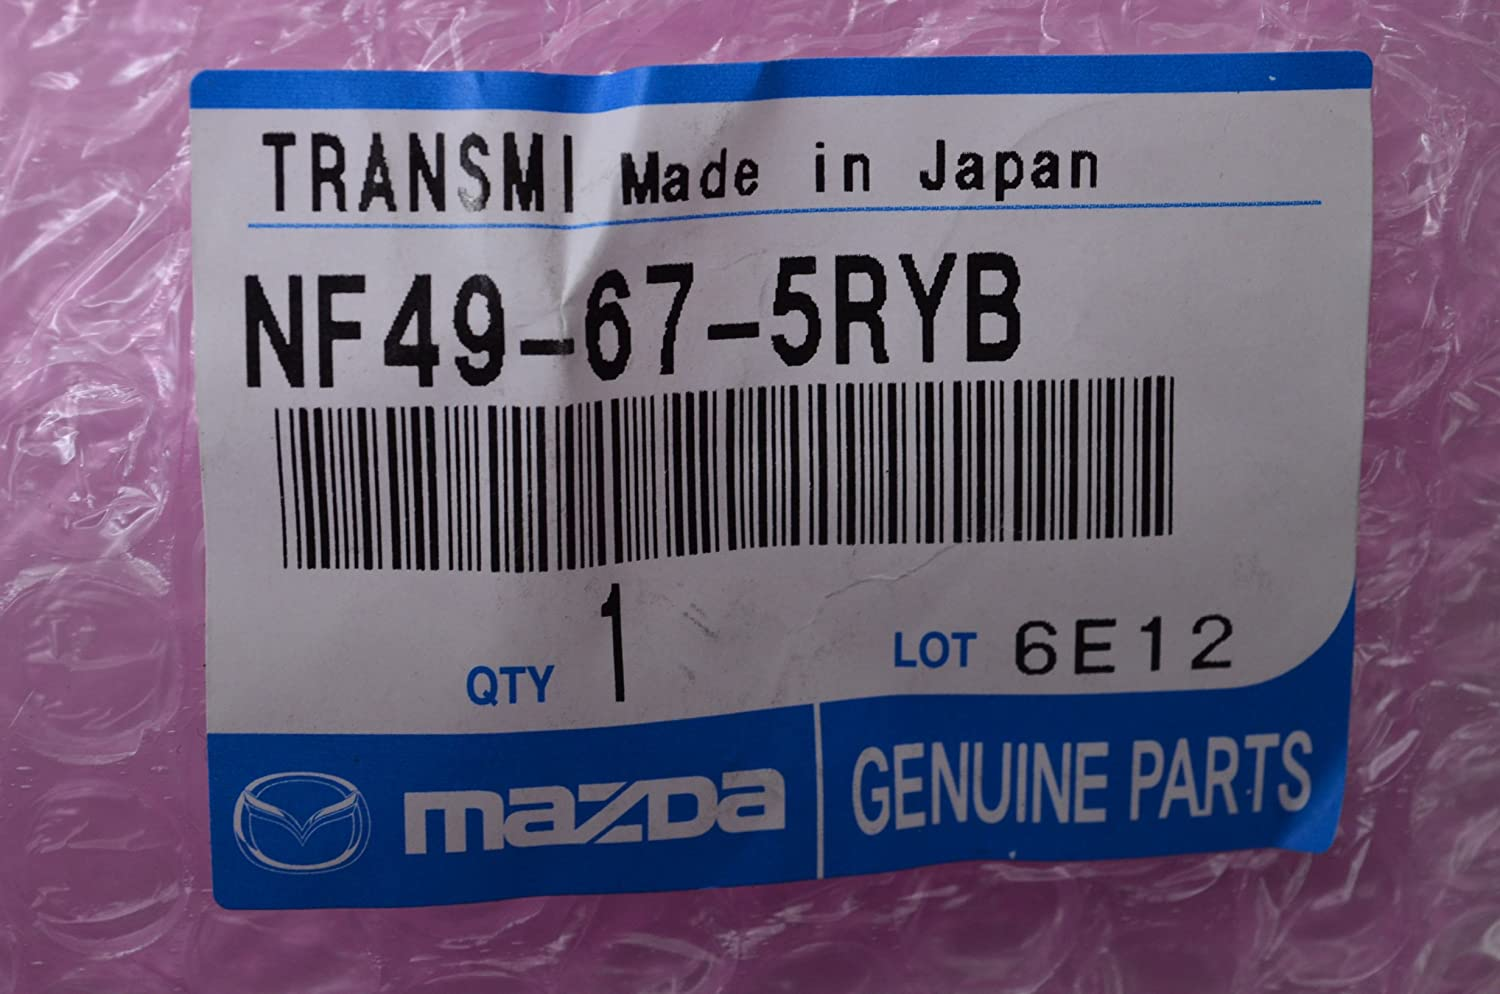 Mazda NF49-67-5RYB Remote Control Transmitter for Keyless Entry and Alarm System